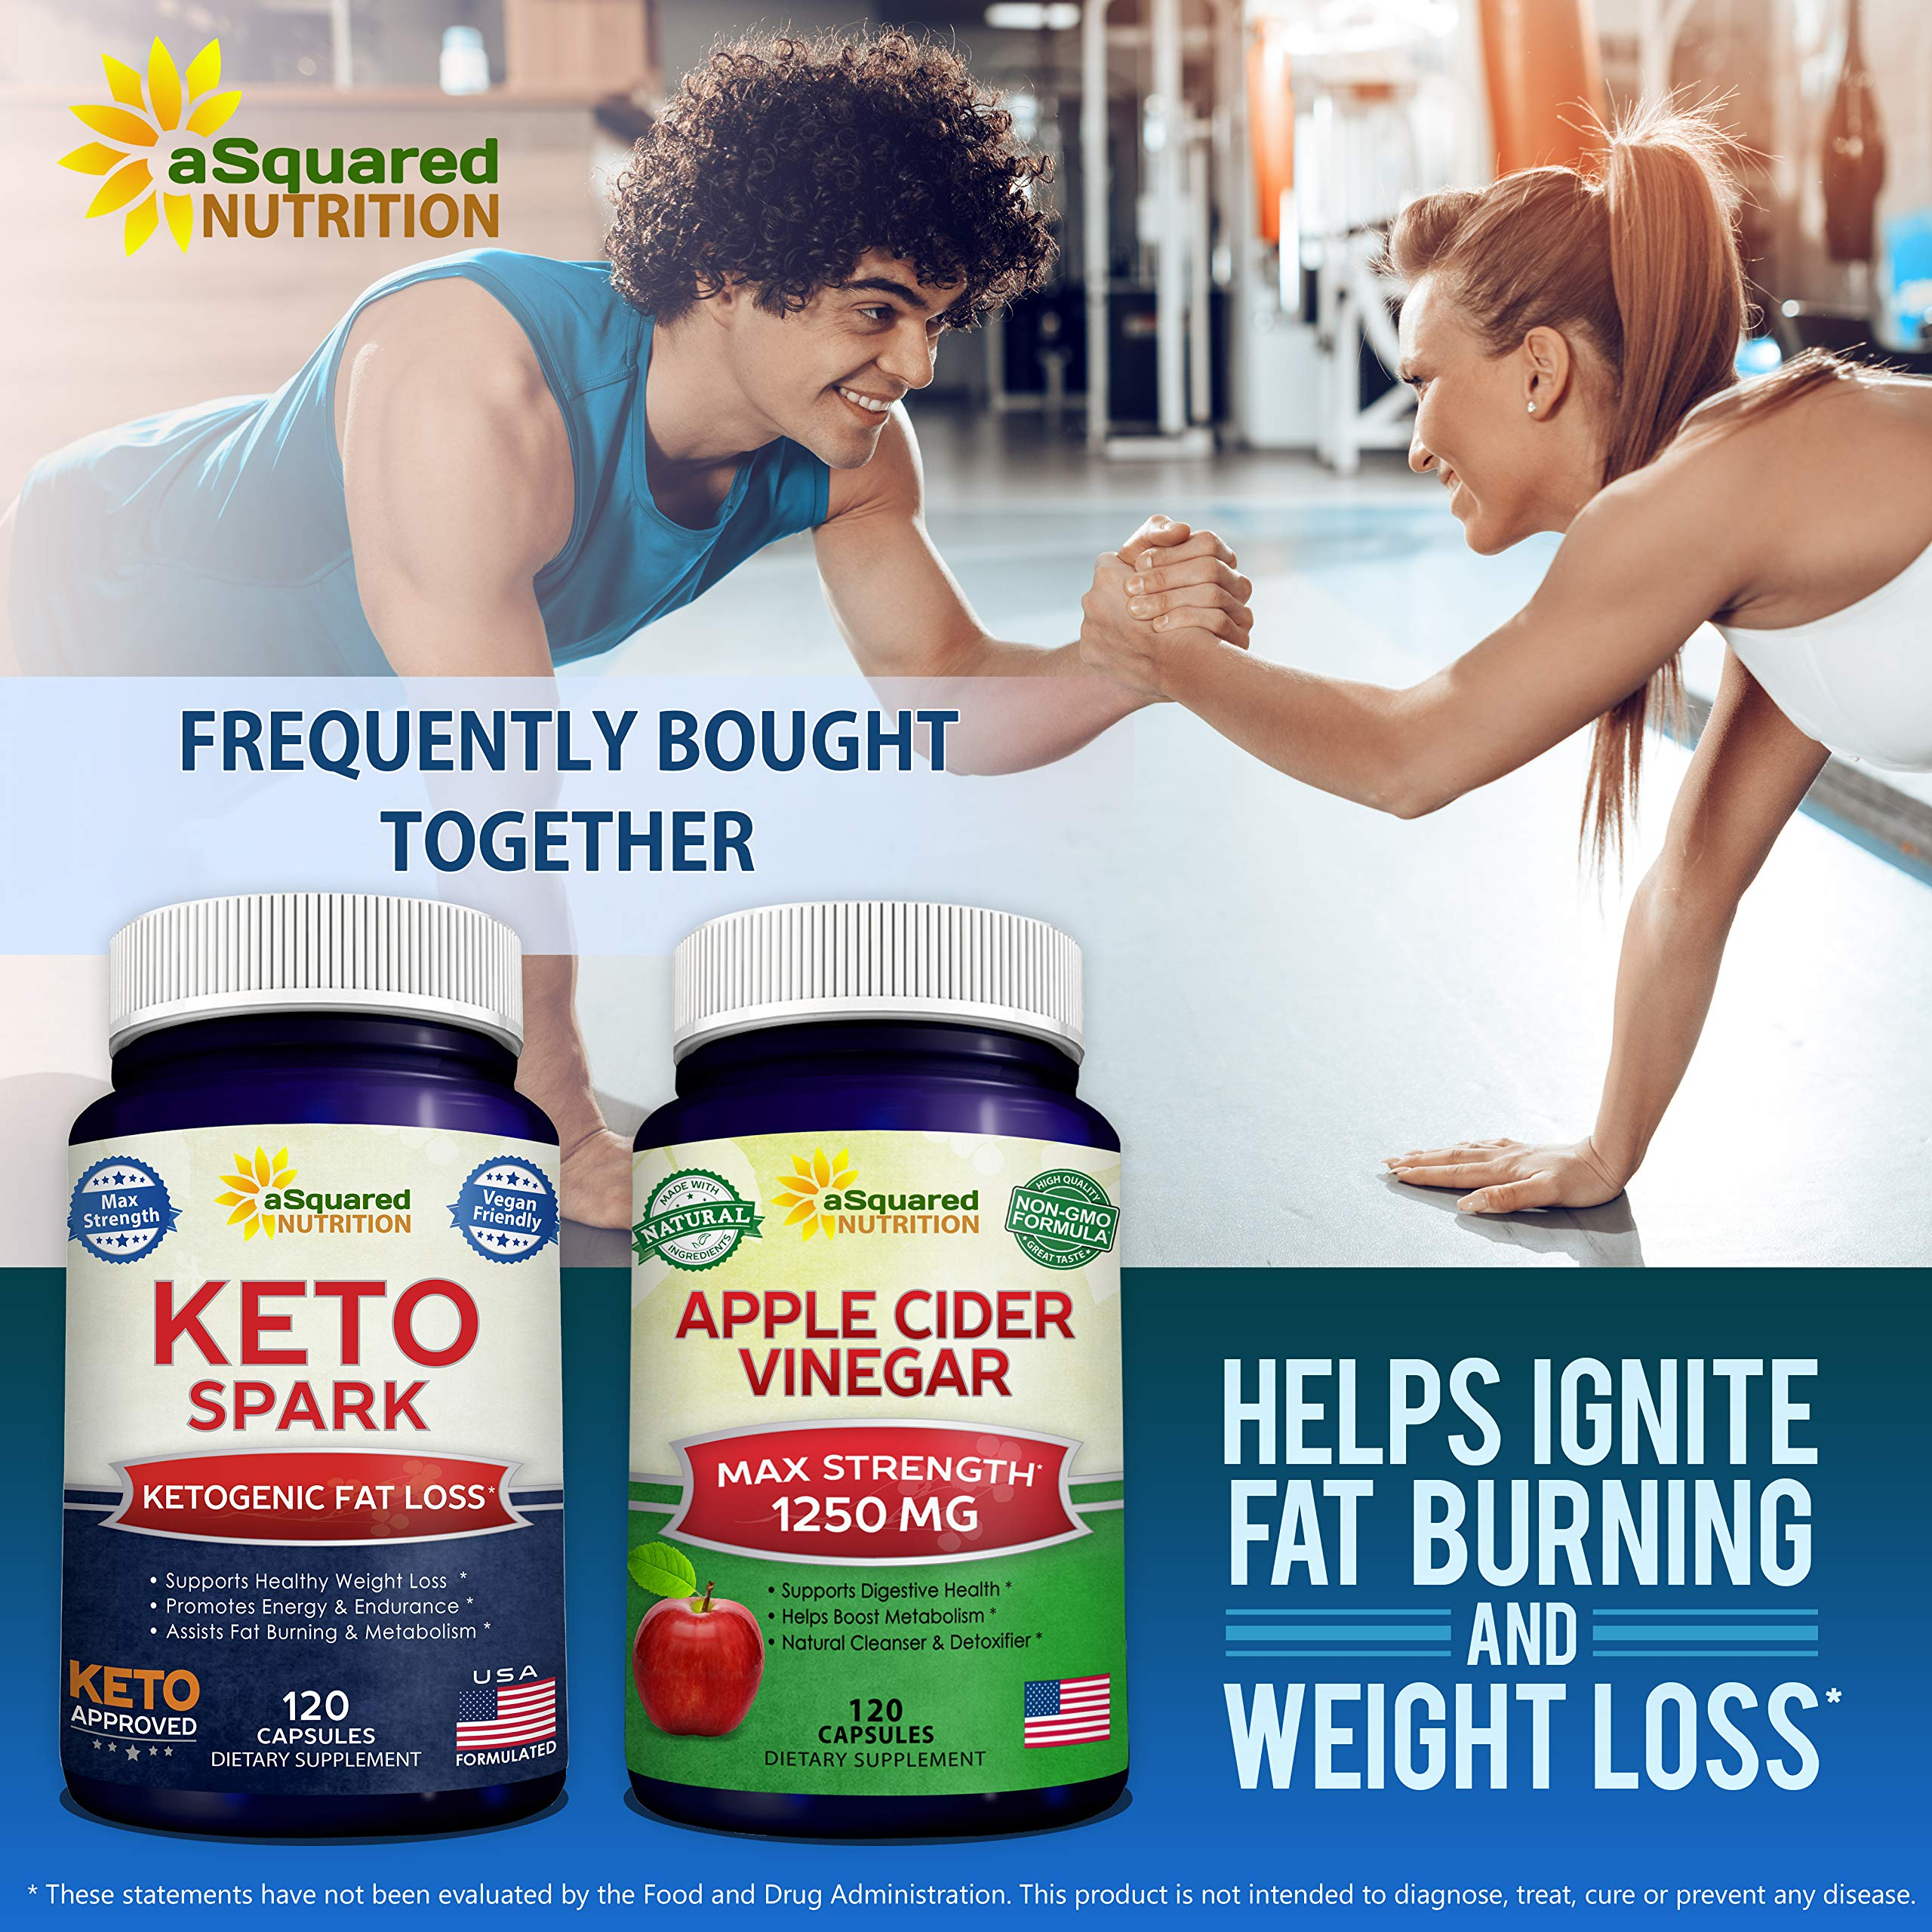 Keto Spark - Supplement for Weight Loss (120 Capsules) - Pills Approved for The Ketogenic & Paleo Diet - Helps Stay in Ketosis, Increase Energy & Focus - Caffeine & Ketones for Women & Men by aSquared Nutrition (Image #7)